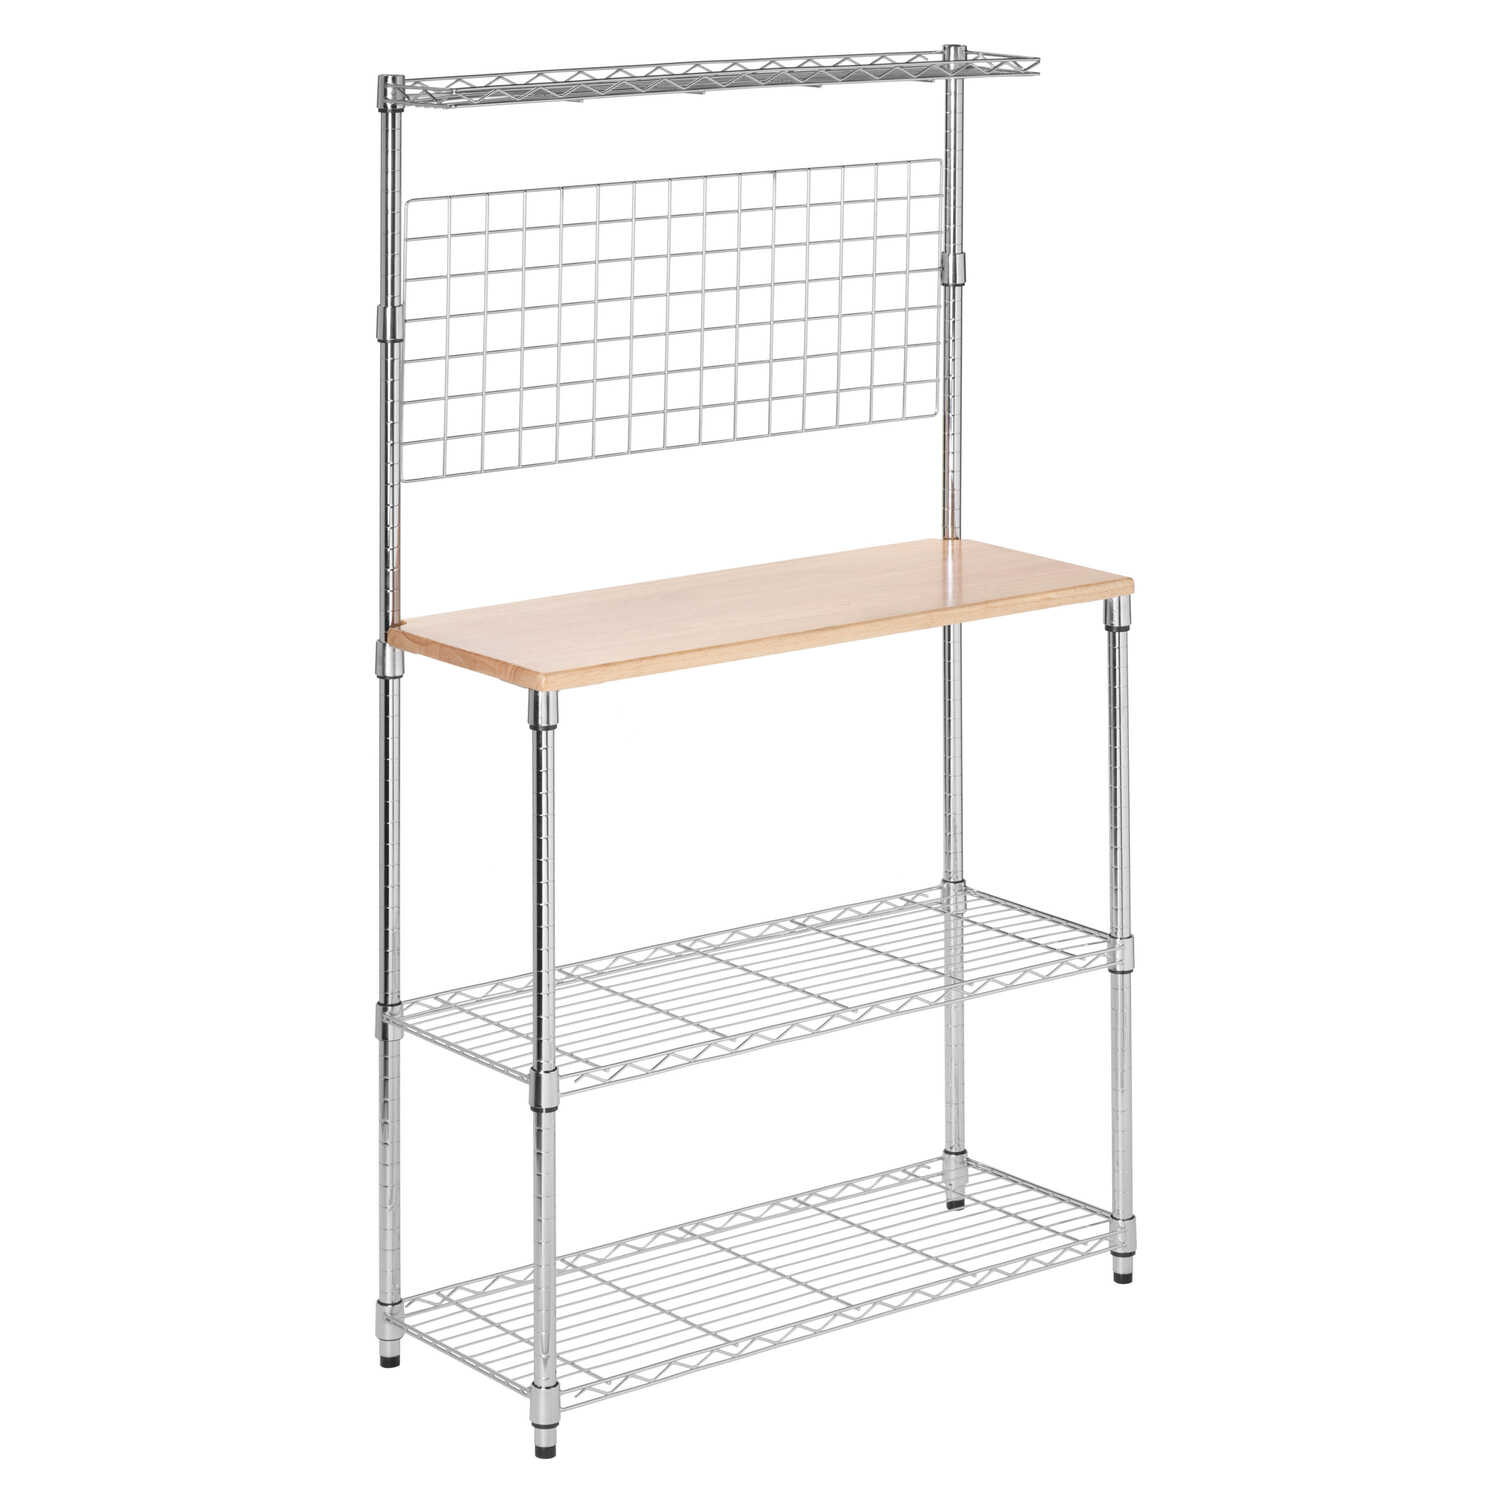 Honey Can Do  61-1/4 in. H x 14-1/4 in. D x 35-3/4 in. W Steel  Baker's Rack